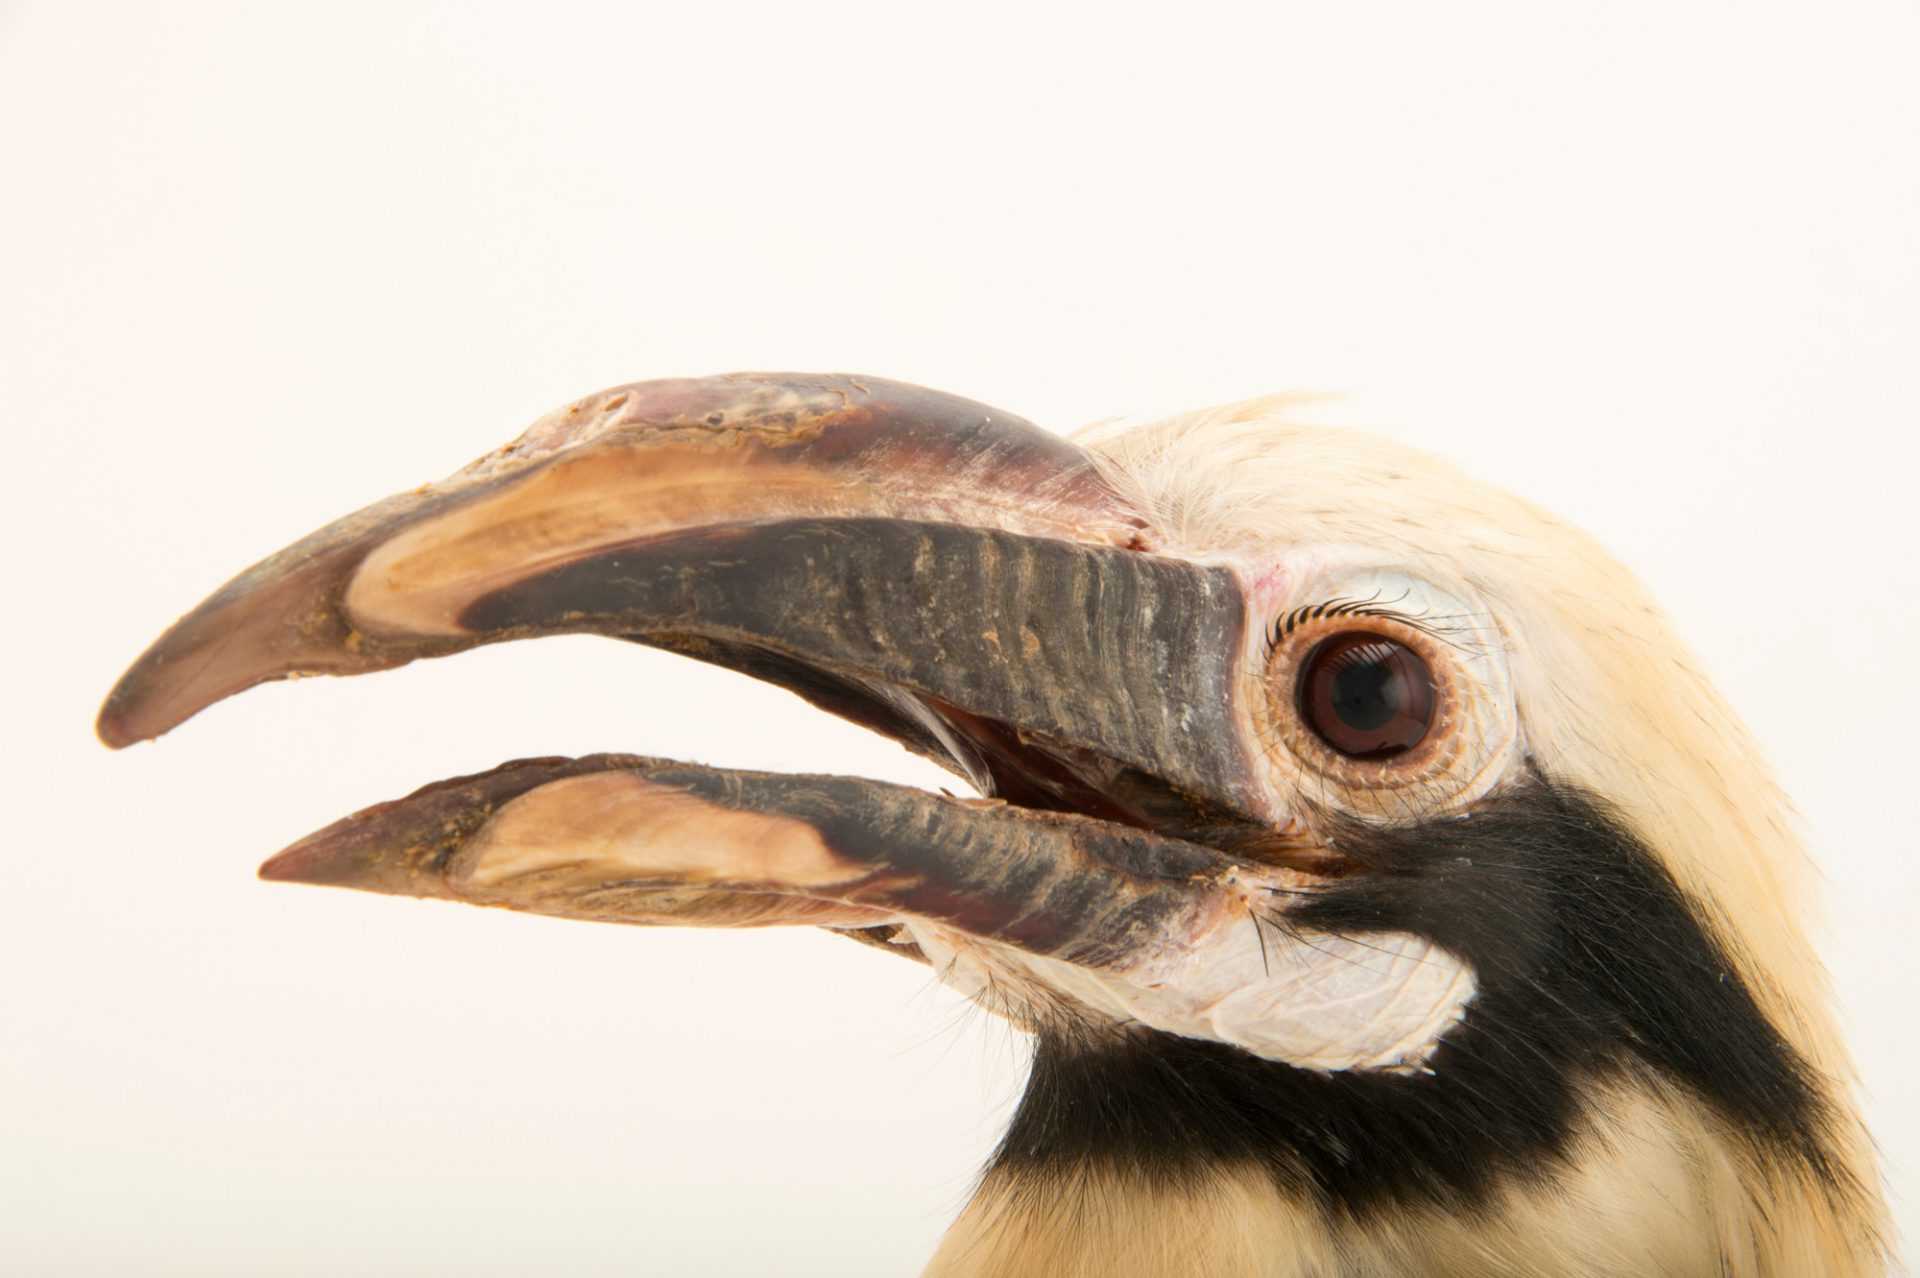 Photo: A male Mindanao tarictic hornbill (Penelopides affinis affinis) in Choussy, France.